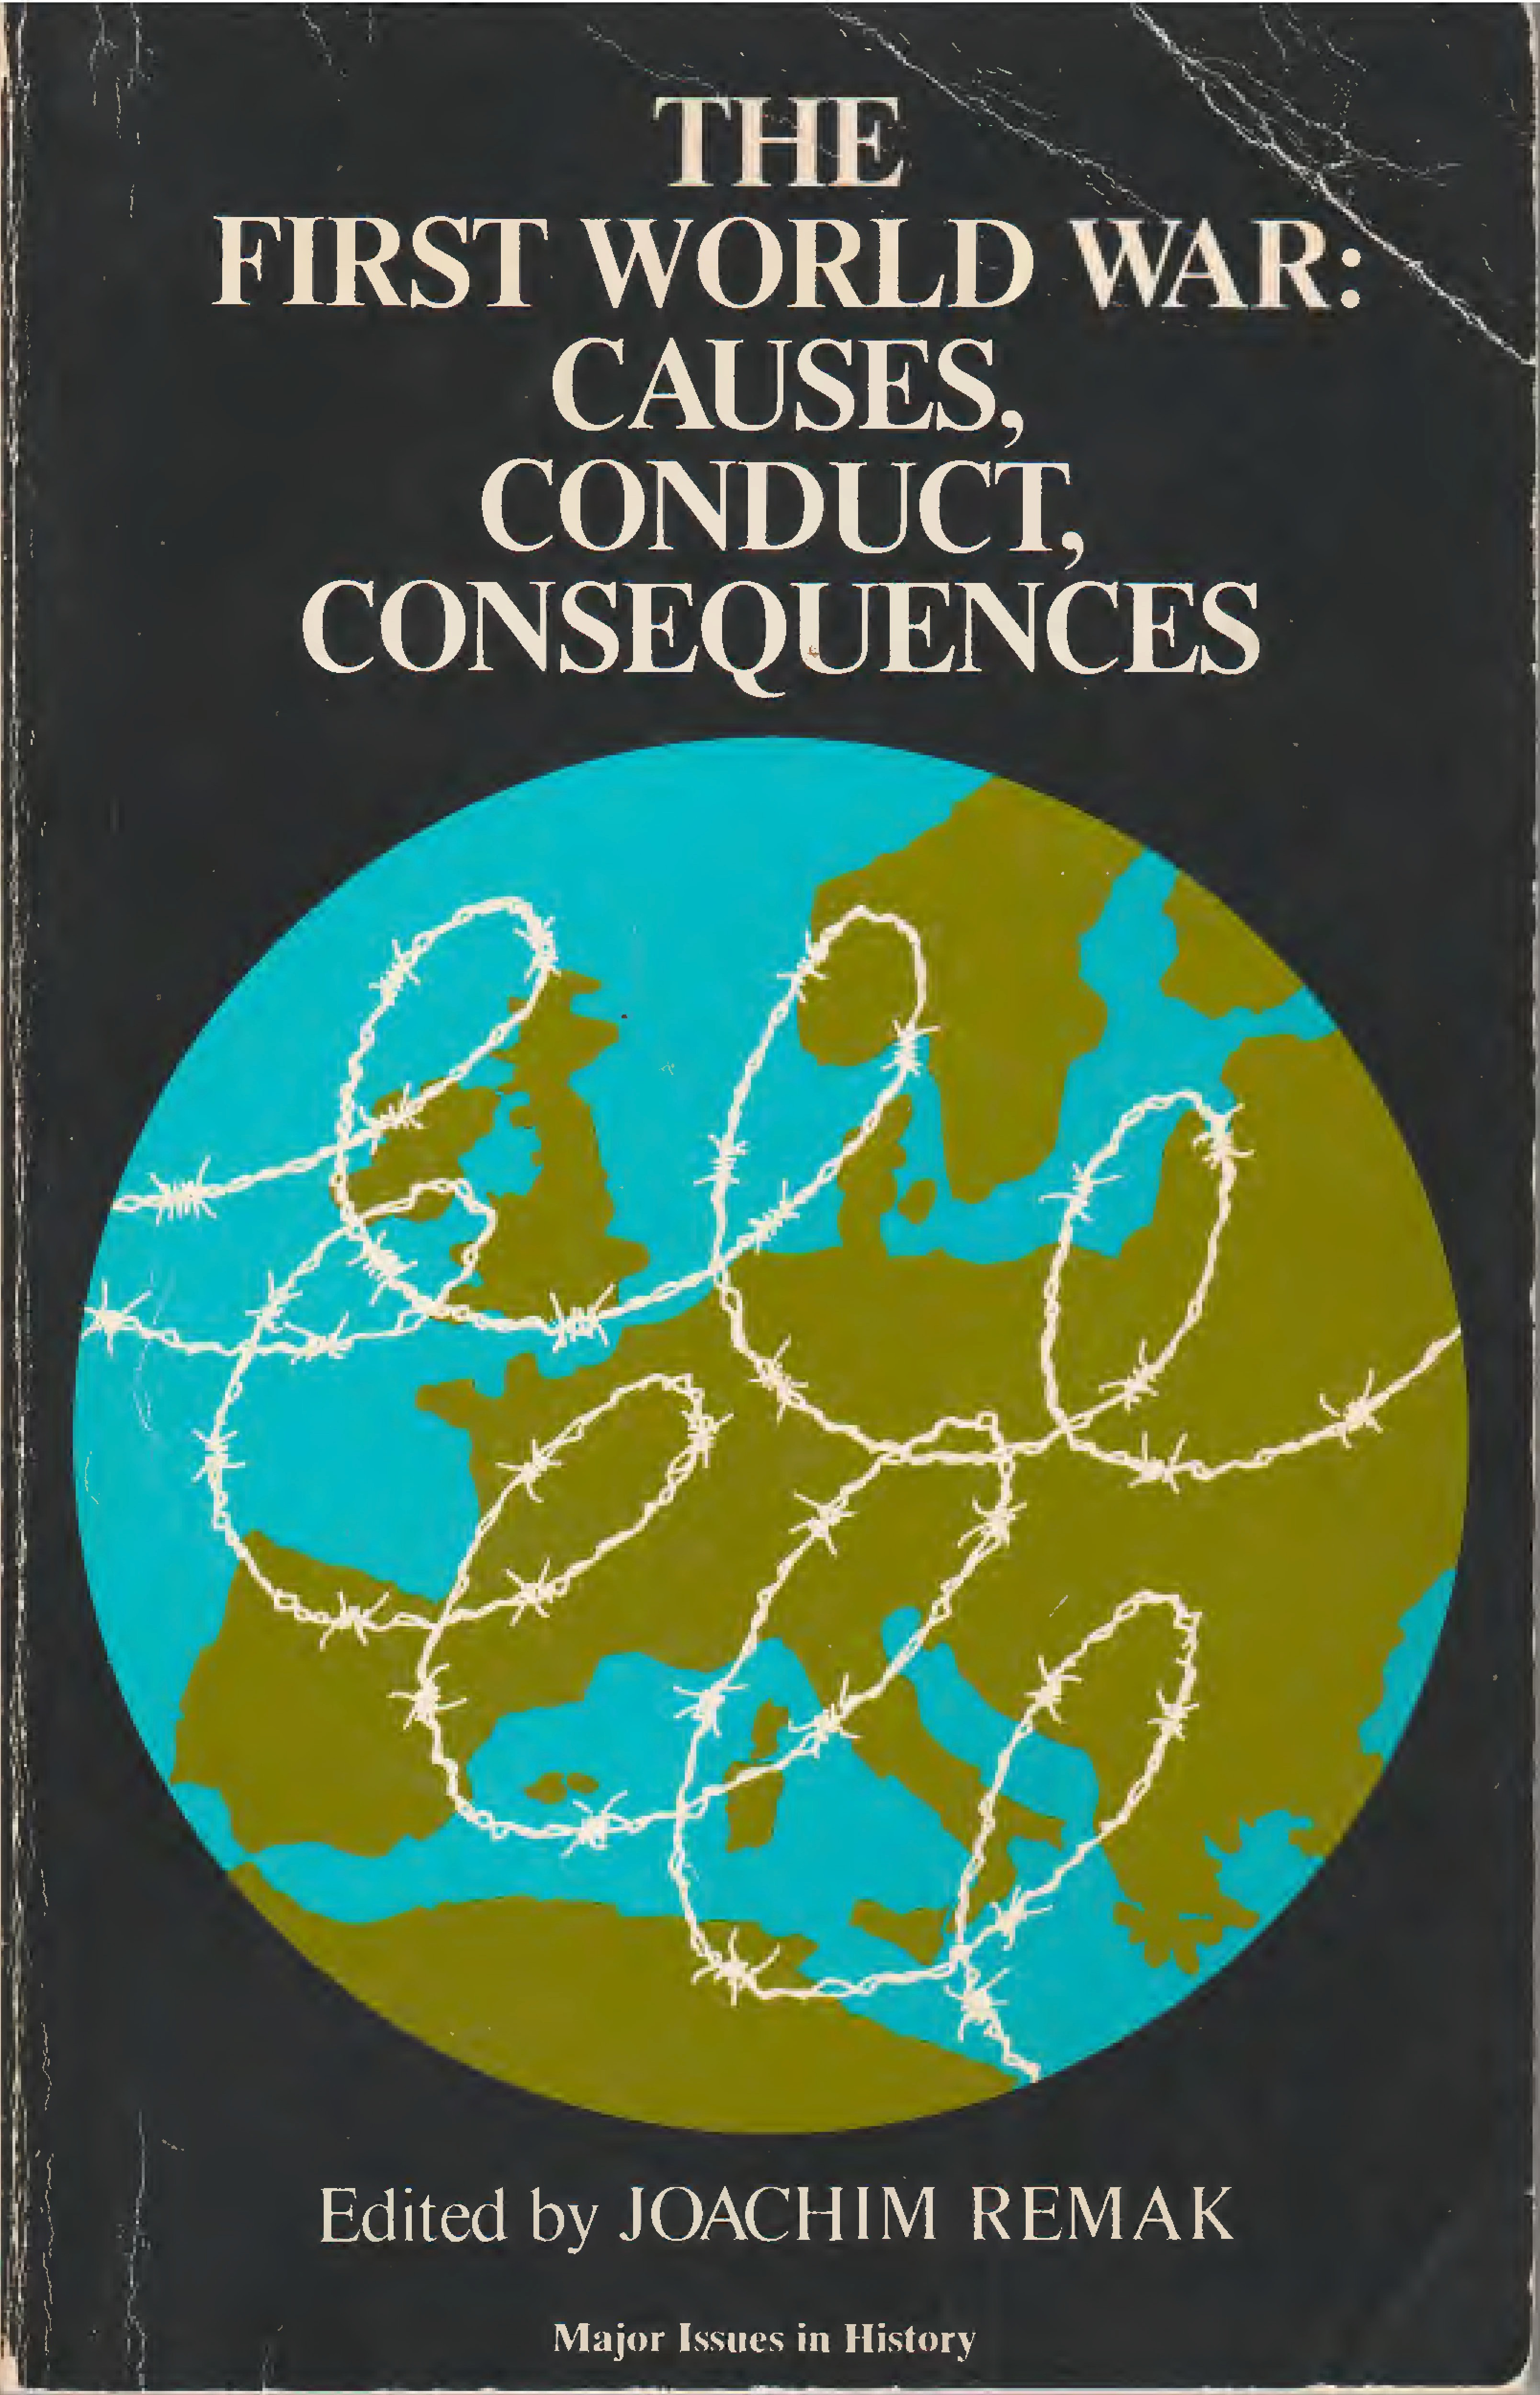 The First World War: Causes, Conduct, Consequences